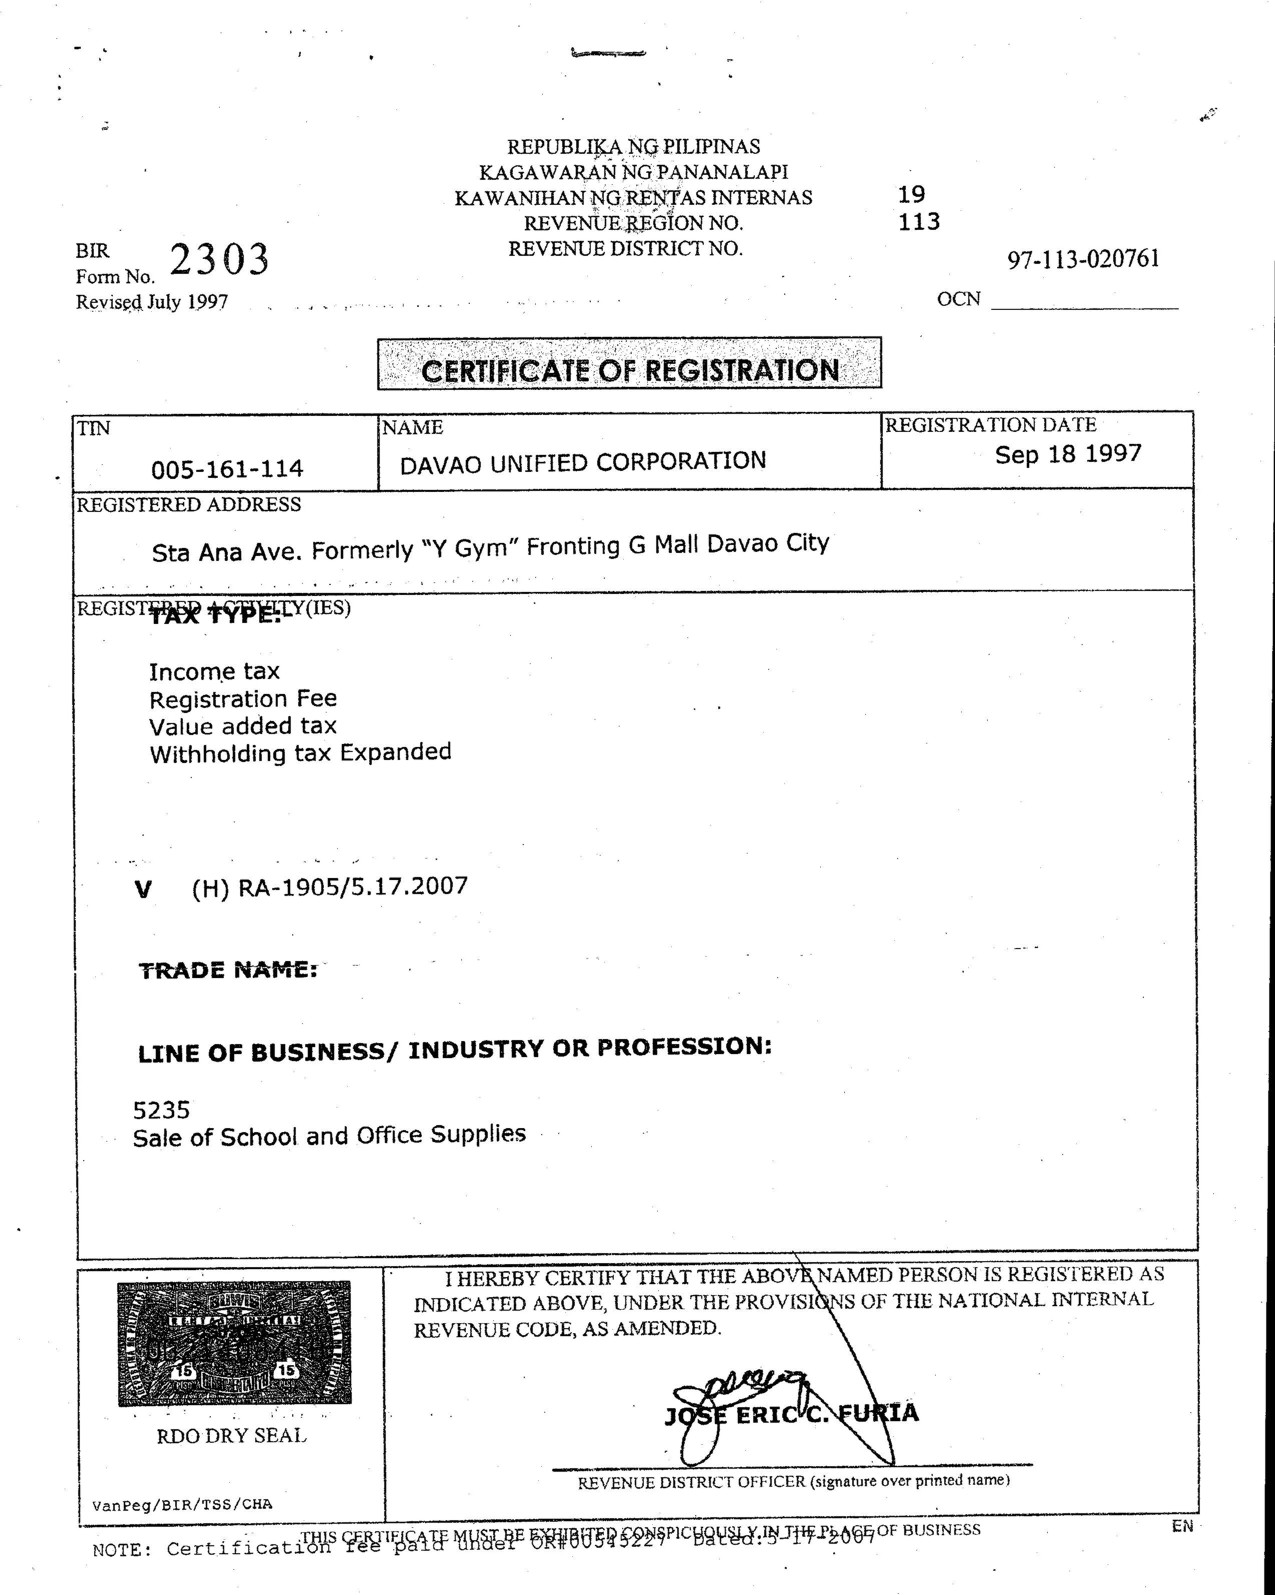 Certificate of Registration with BIR (Form 2303)